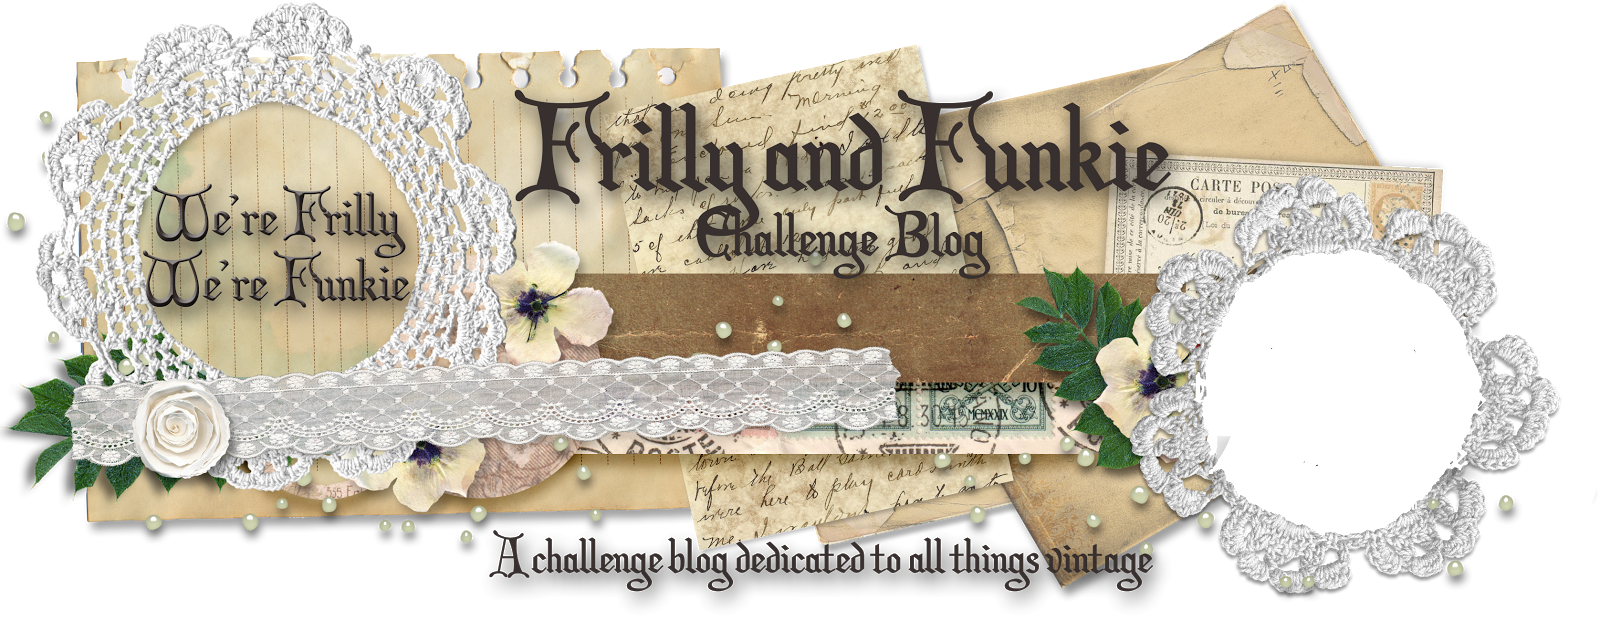 Frilly and Funkie